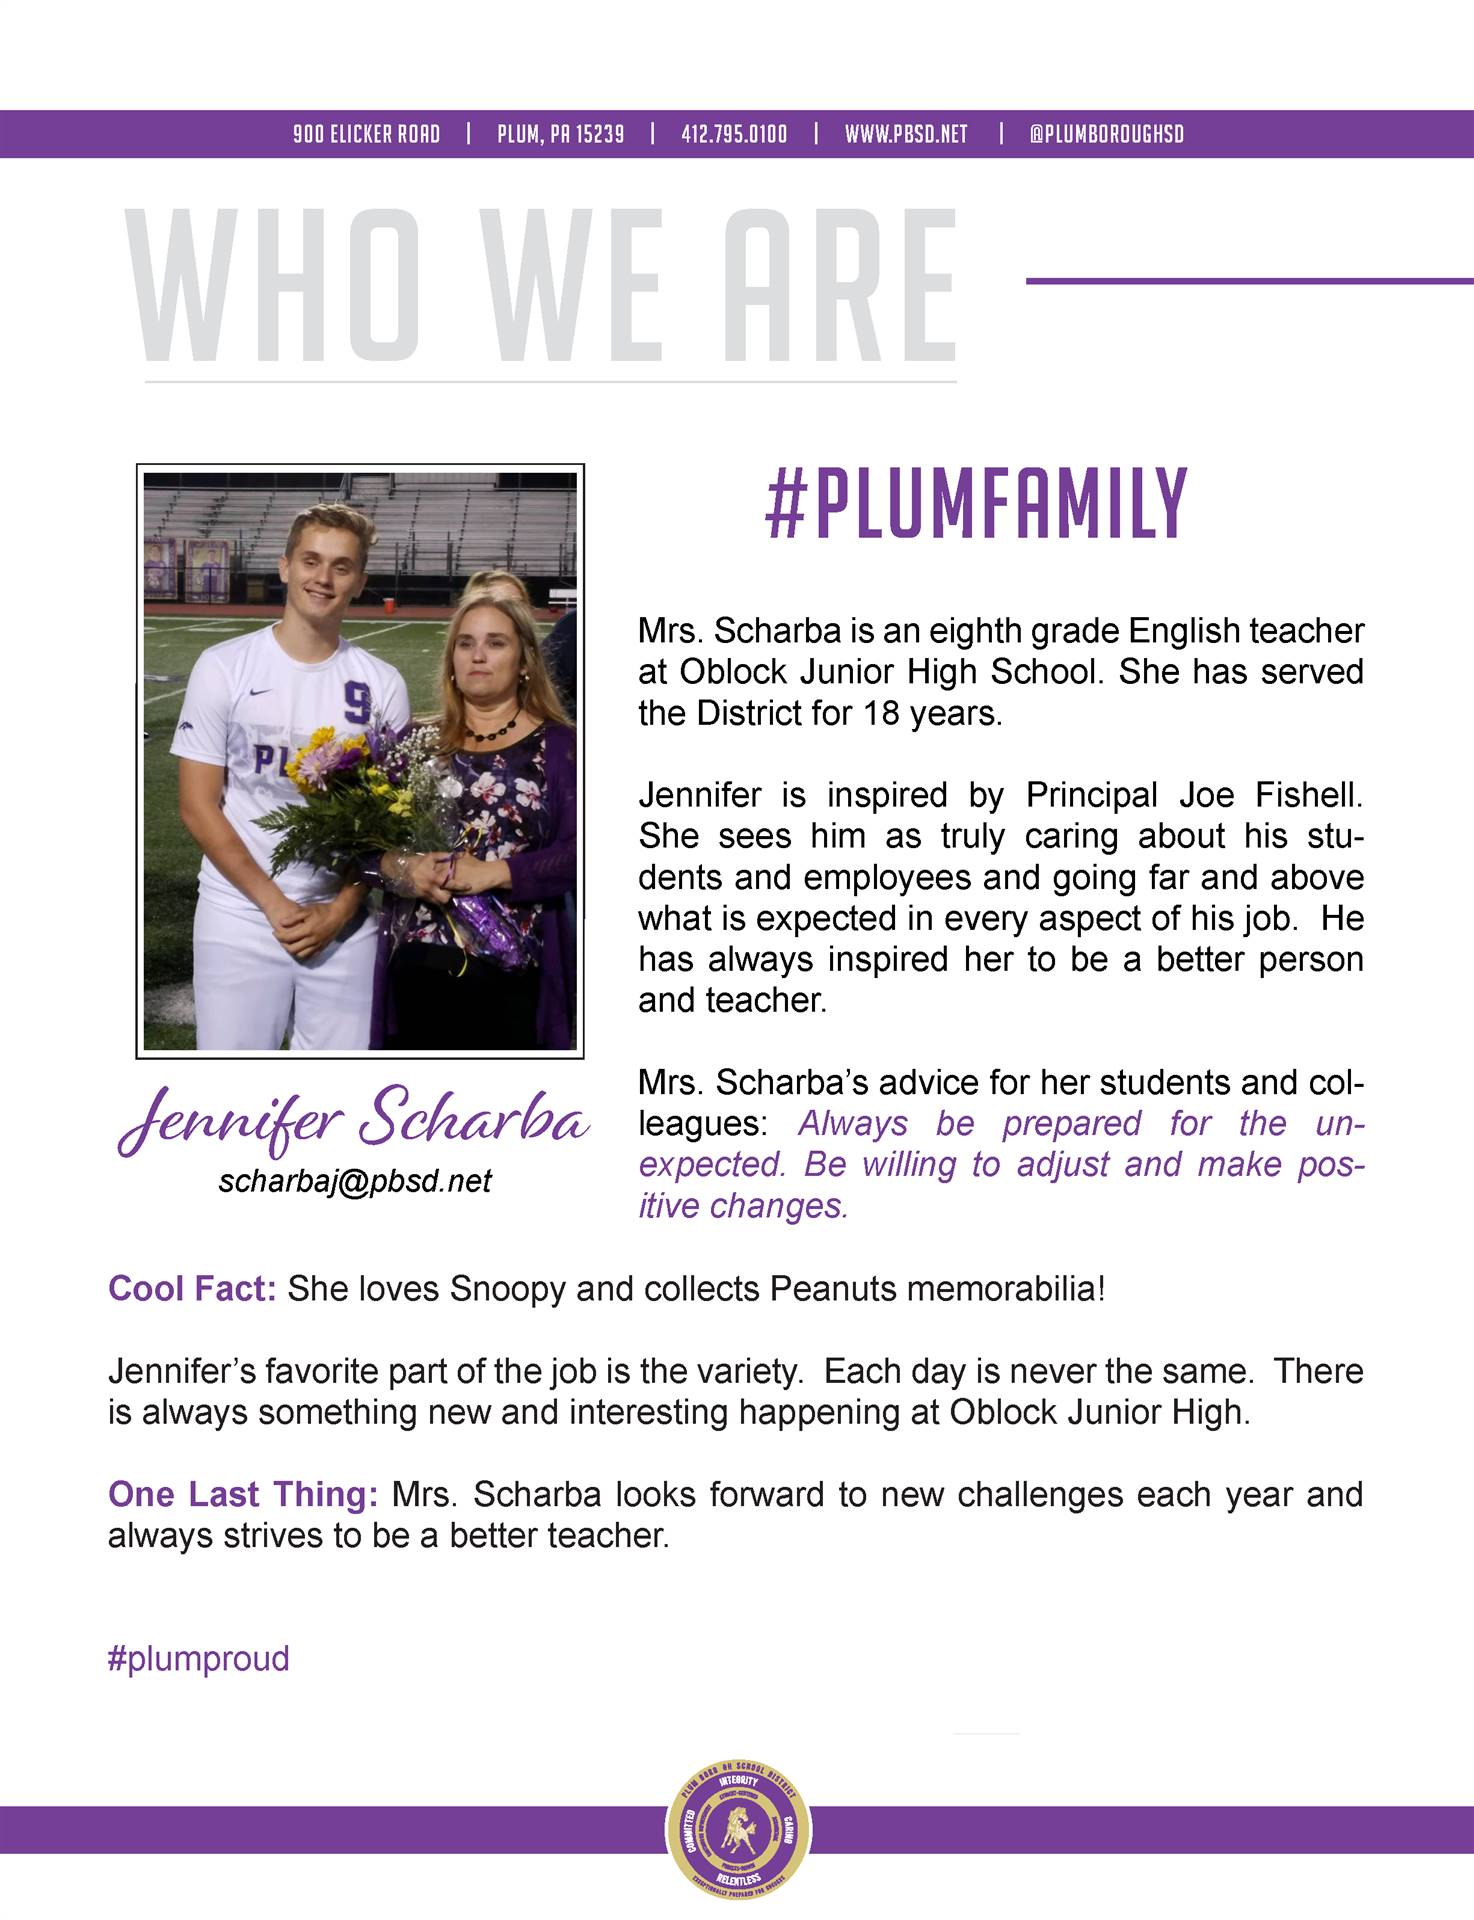 Who We Are Wednesday features Jennifer Scharba.